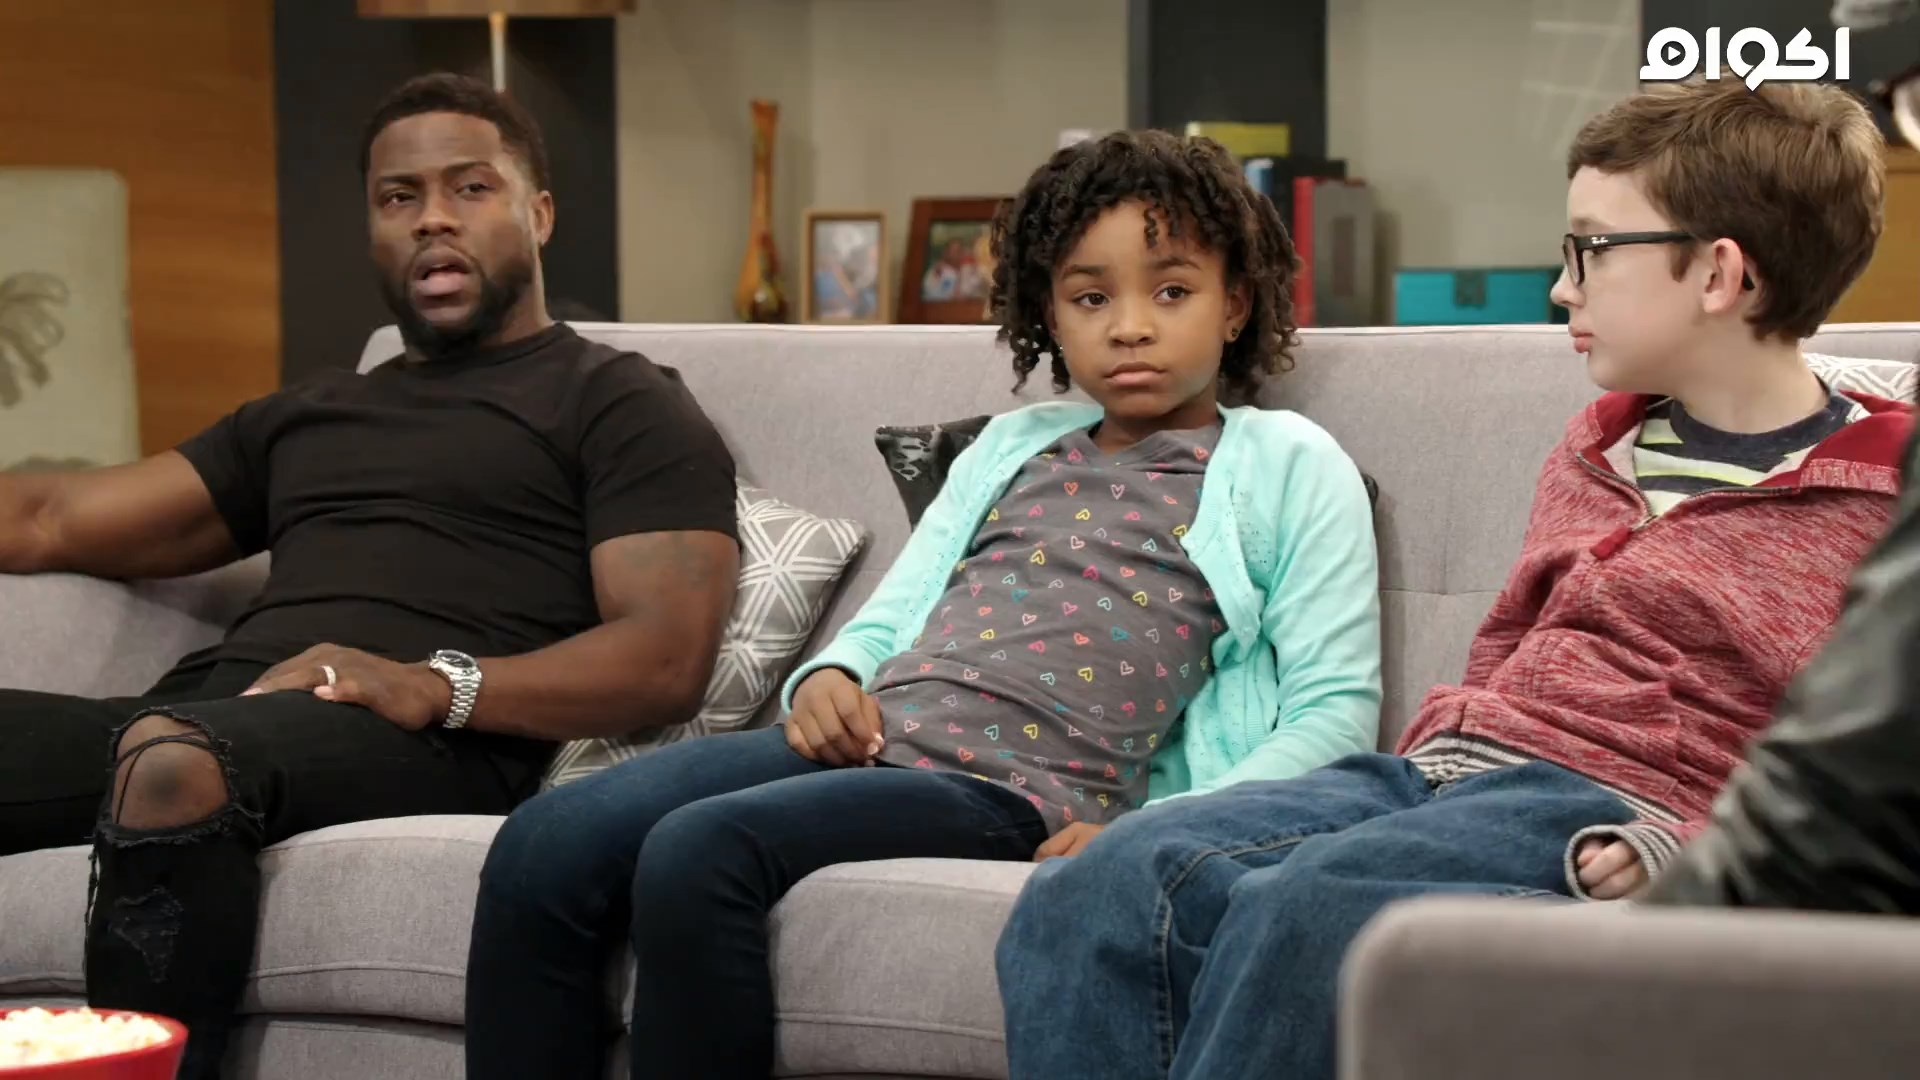 Kevin Hart's Guide to Black History,Kevin Hart's Guide to Black History 2019,Kevin Hart's Guide to Black History مدبلج,Kevin Harts Guide To Black History,Kevin Harts Guide To Black History 2019,Kevin Harts Guide To Black History مدبلج,كوميدي